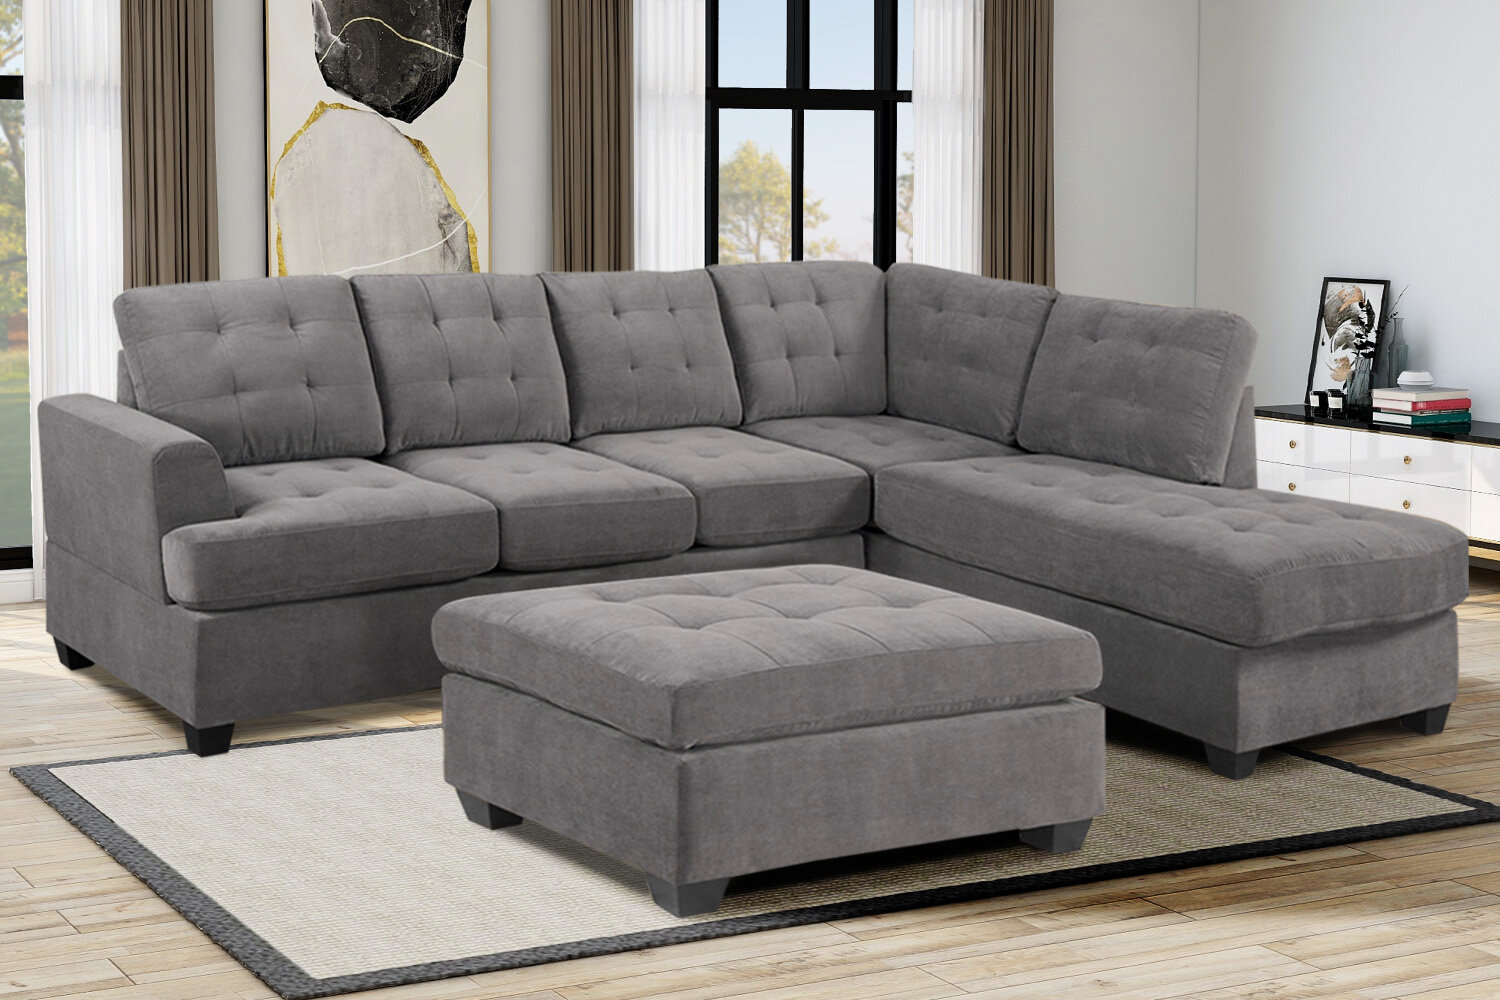 Bassie 3 Piece Sectionals You Ll Love In 2021 Wayfair